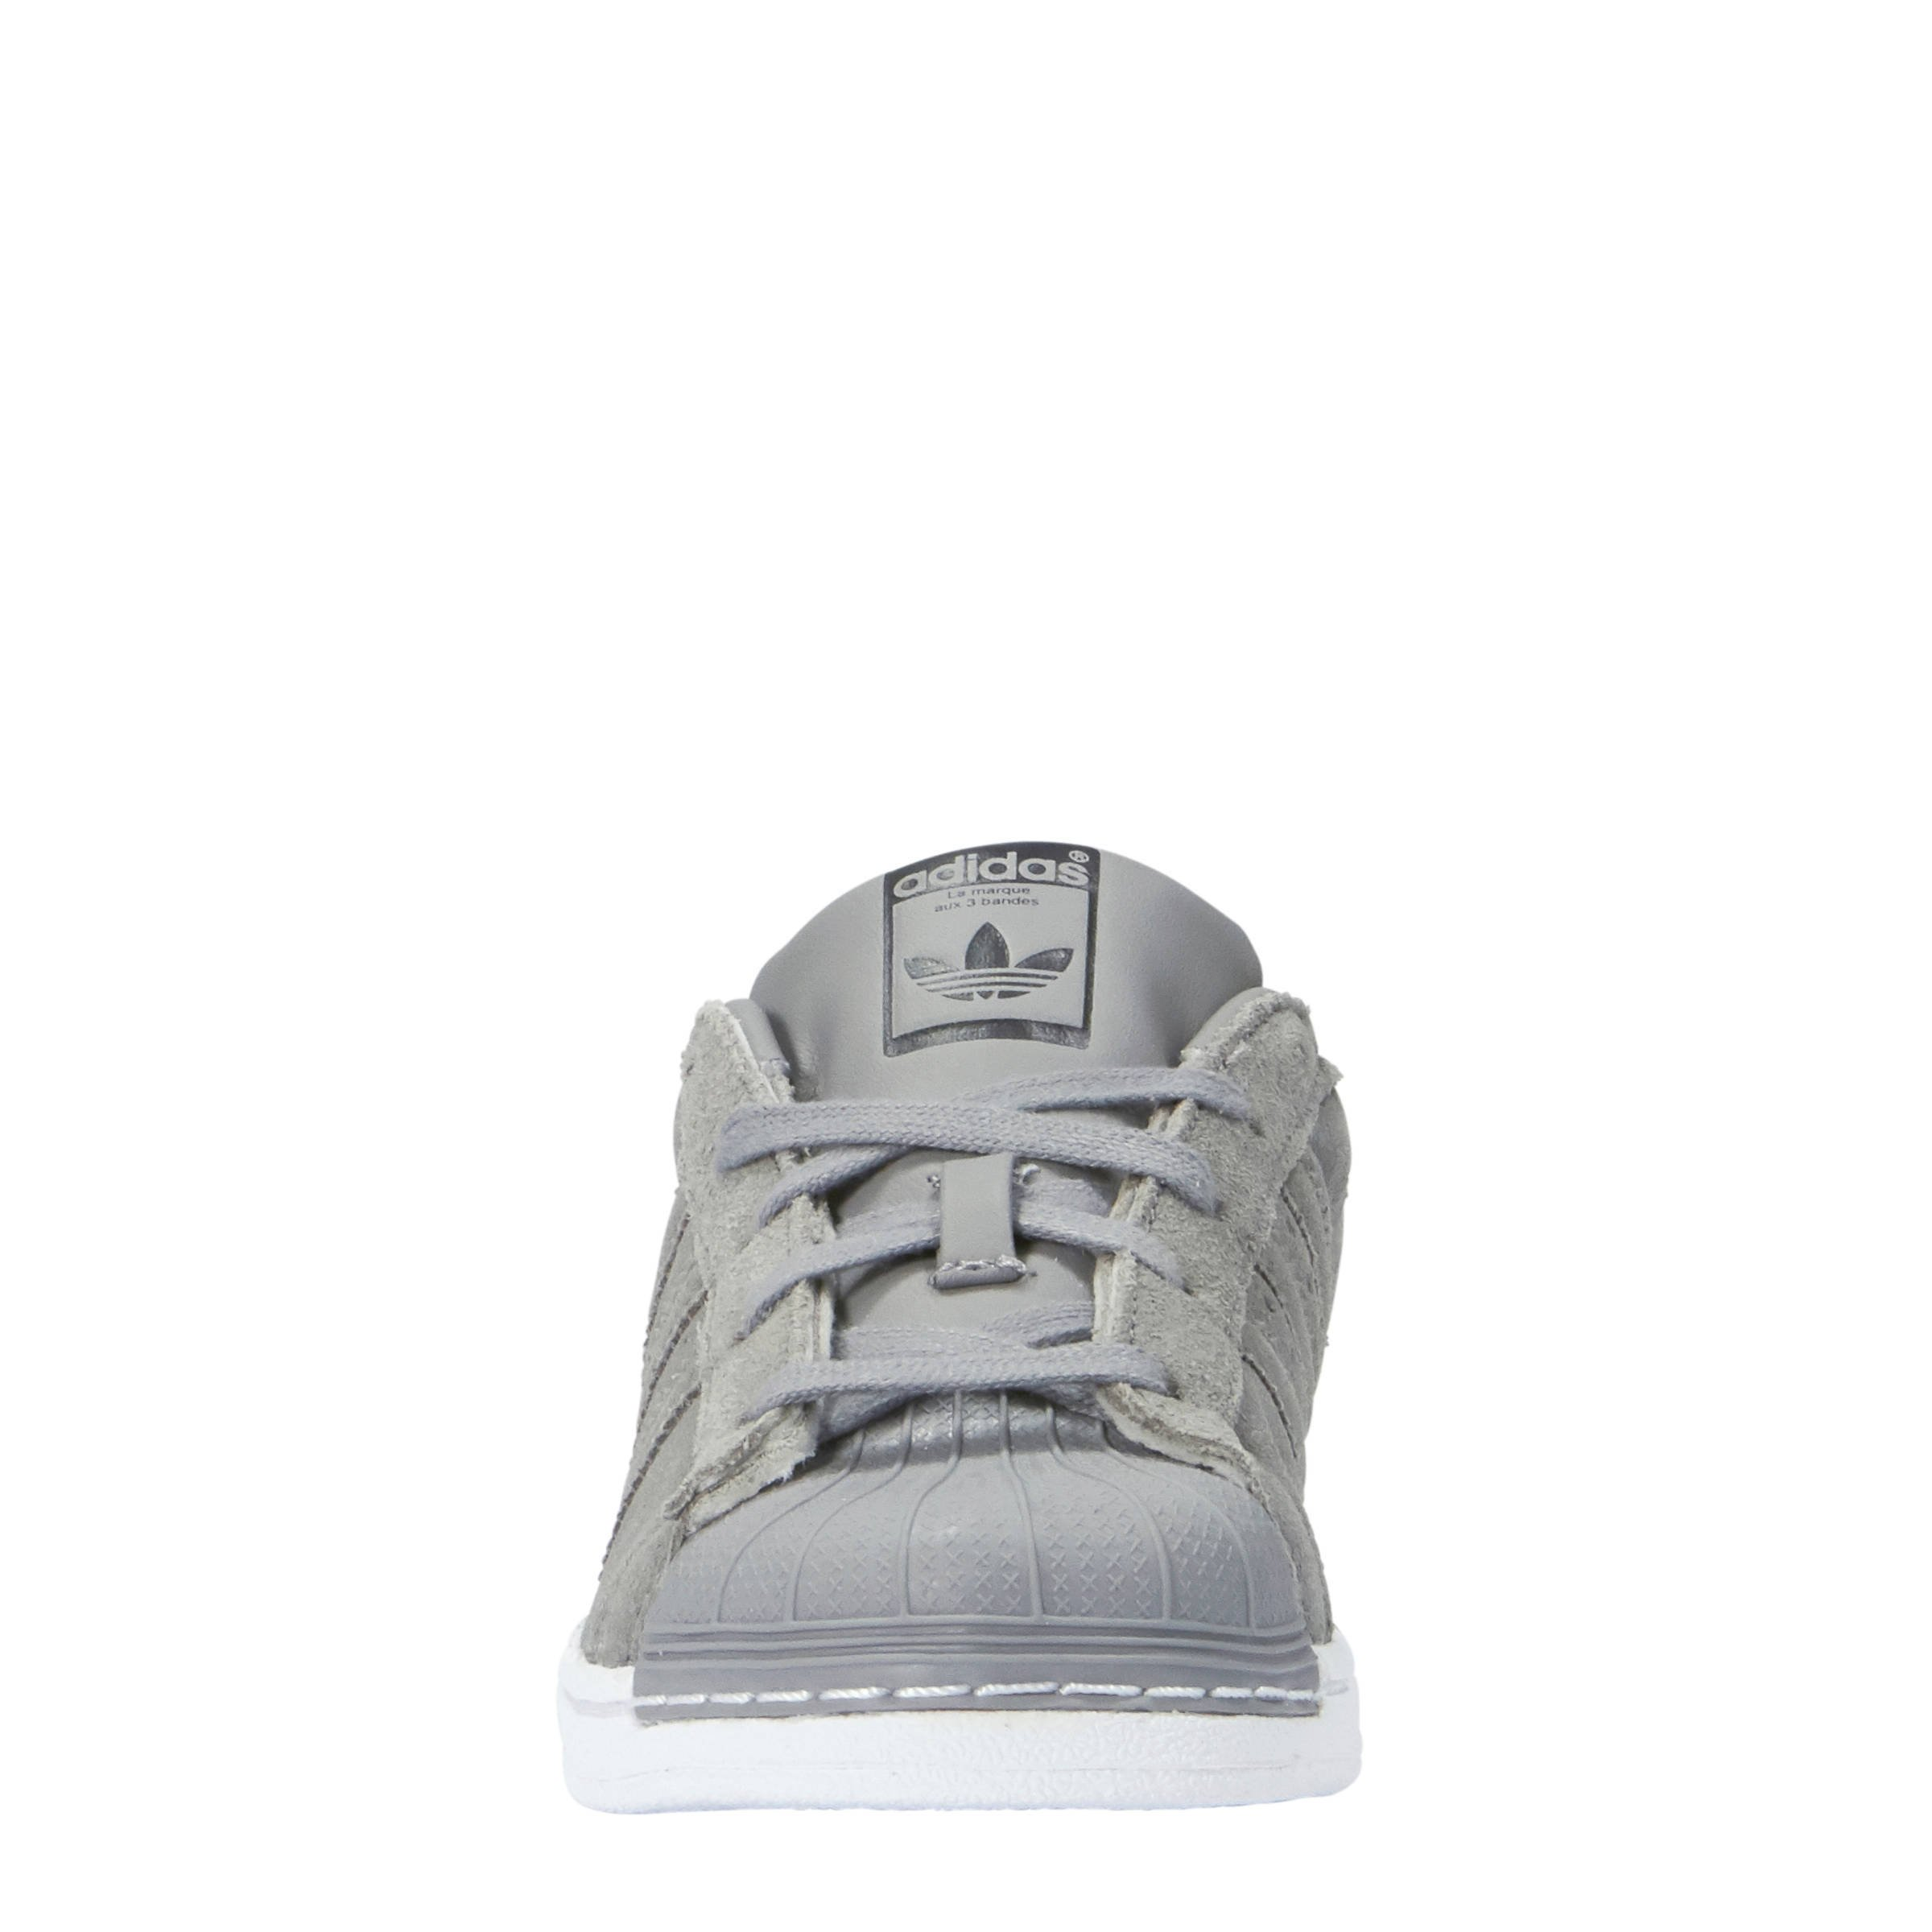 Kids Adidas Kids Adidas Superstar Grey Superstar Adidas Grey qWwPxUFwH7